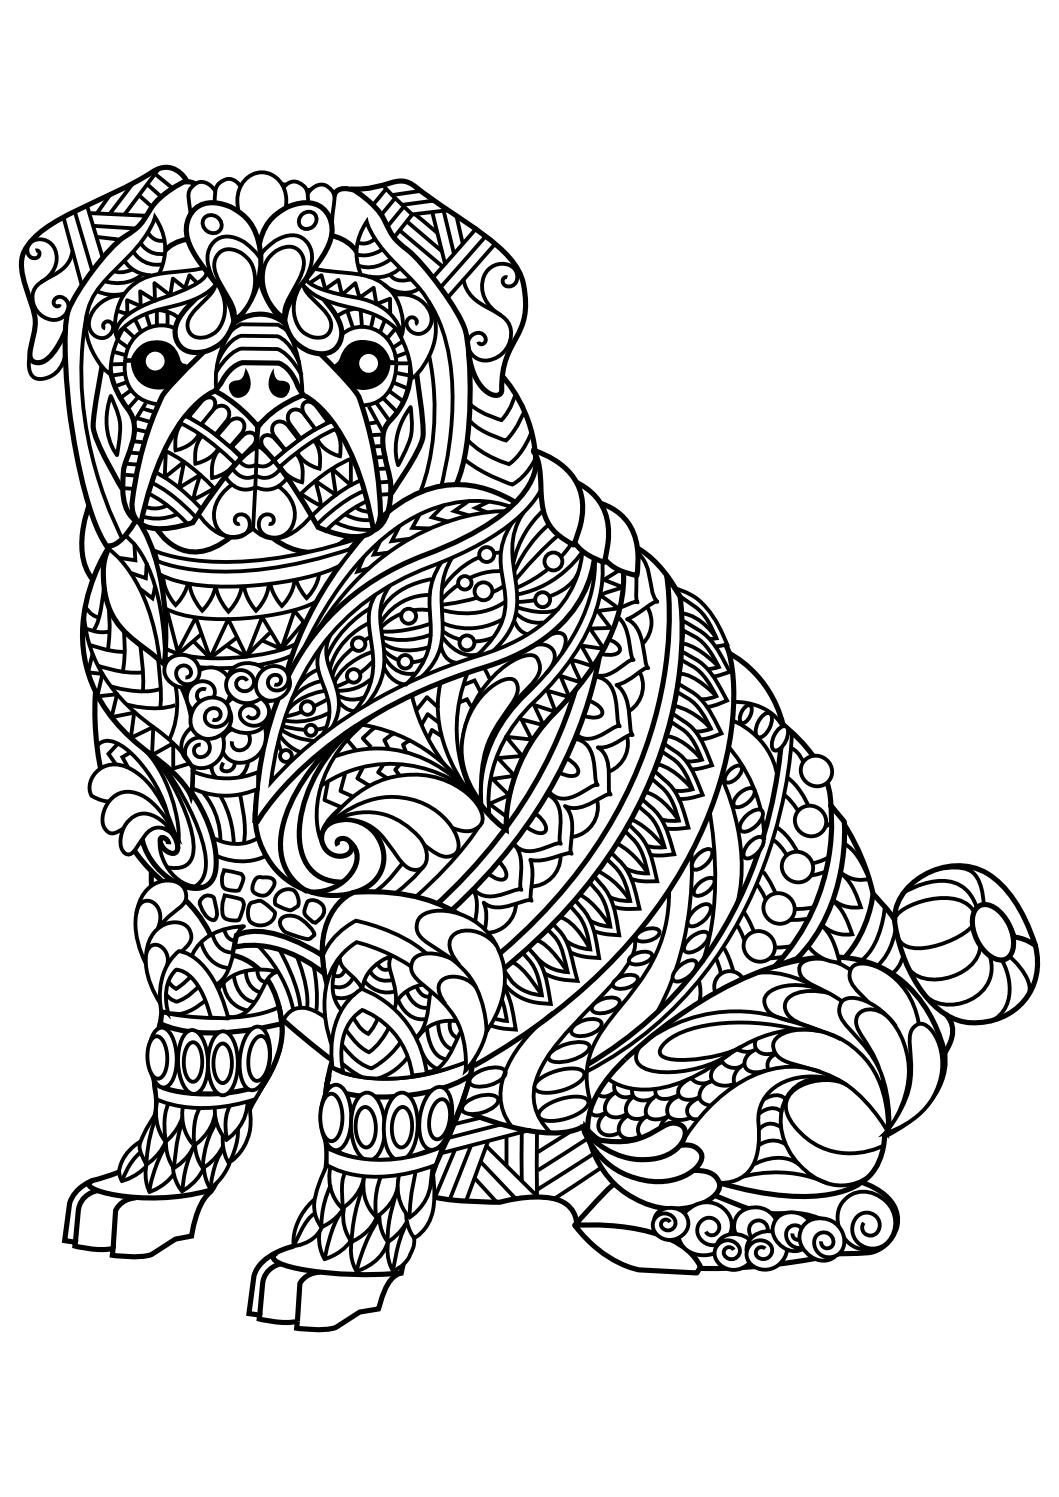 Animal coloring pages pdf Coloring Animals